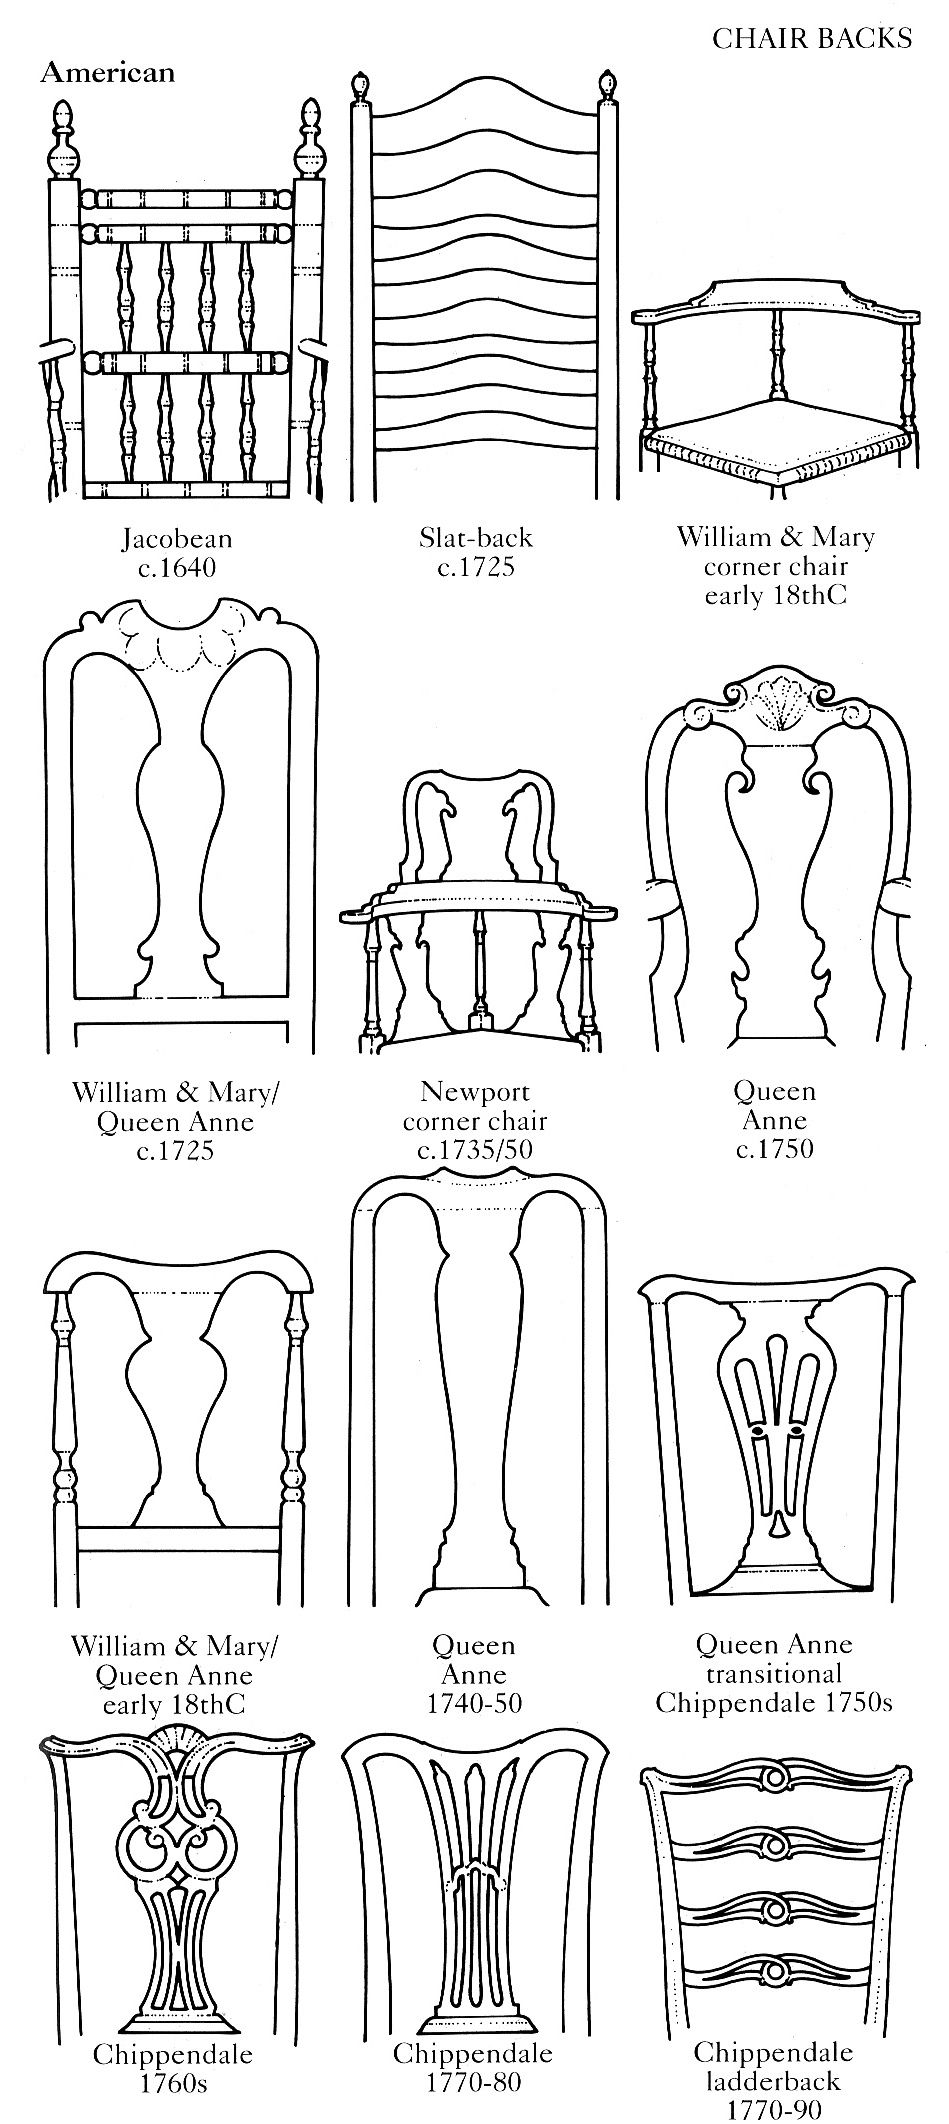 Diagram of American chair backs, 17th century to late 18th